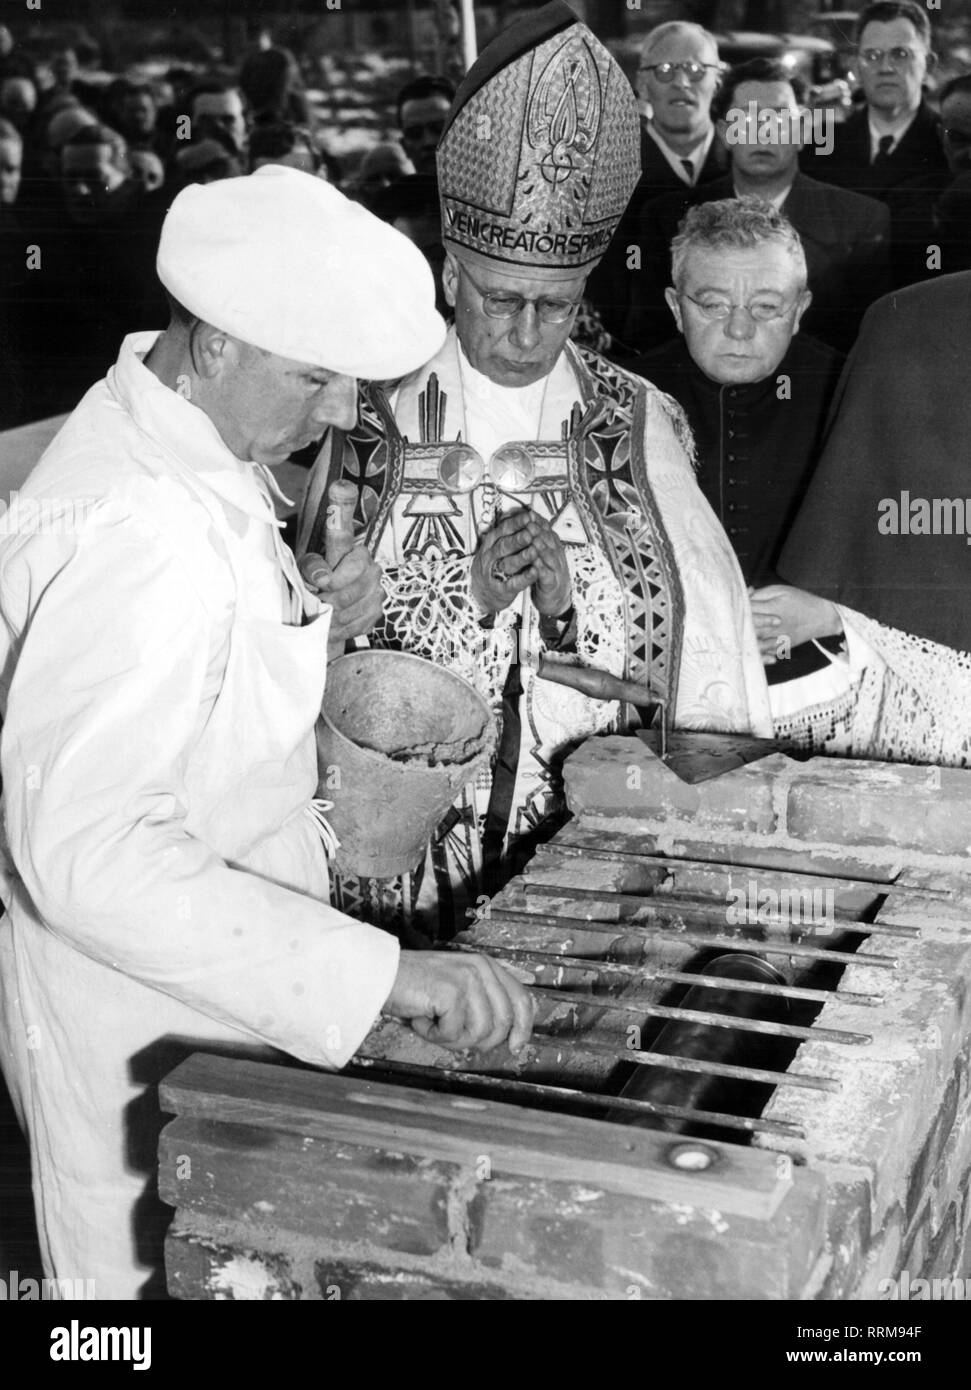 Neuhaeusler, Johannes, 27.1.1888 - 14.12.1973, German theologian, suffragan bishop in the archbishopric Munich and Freising 8.2.1947 - 14.12.1973, half length, at the laying of the foundation stone of the IRO hospital at Biederstein, Munich, 15.1.1952, Additional-Rights-Clearance-Info-Not-Available - Stock Image